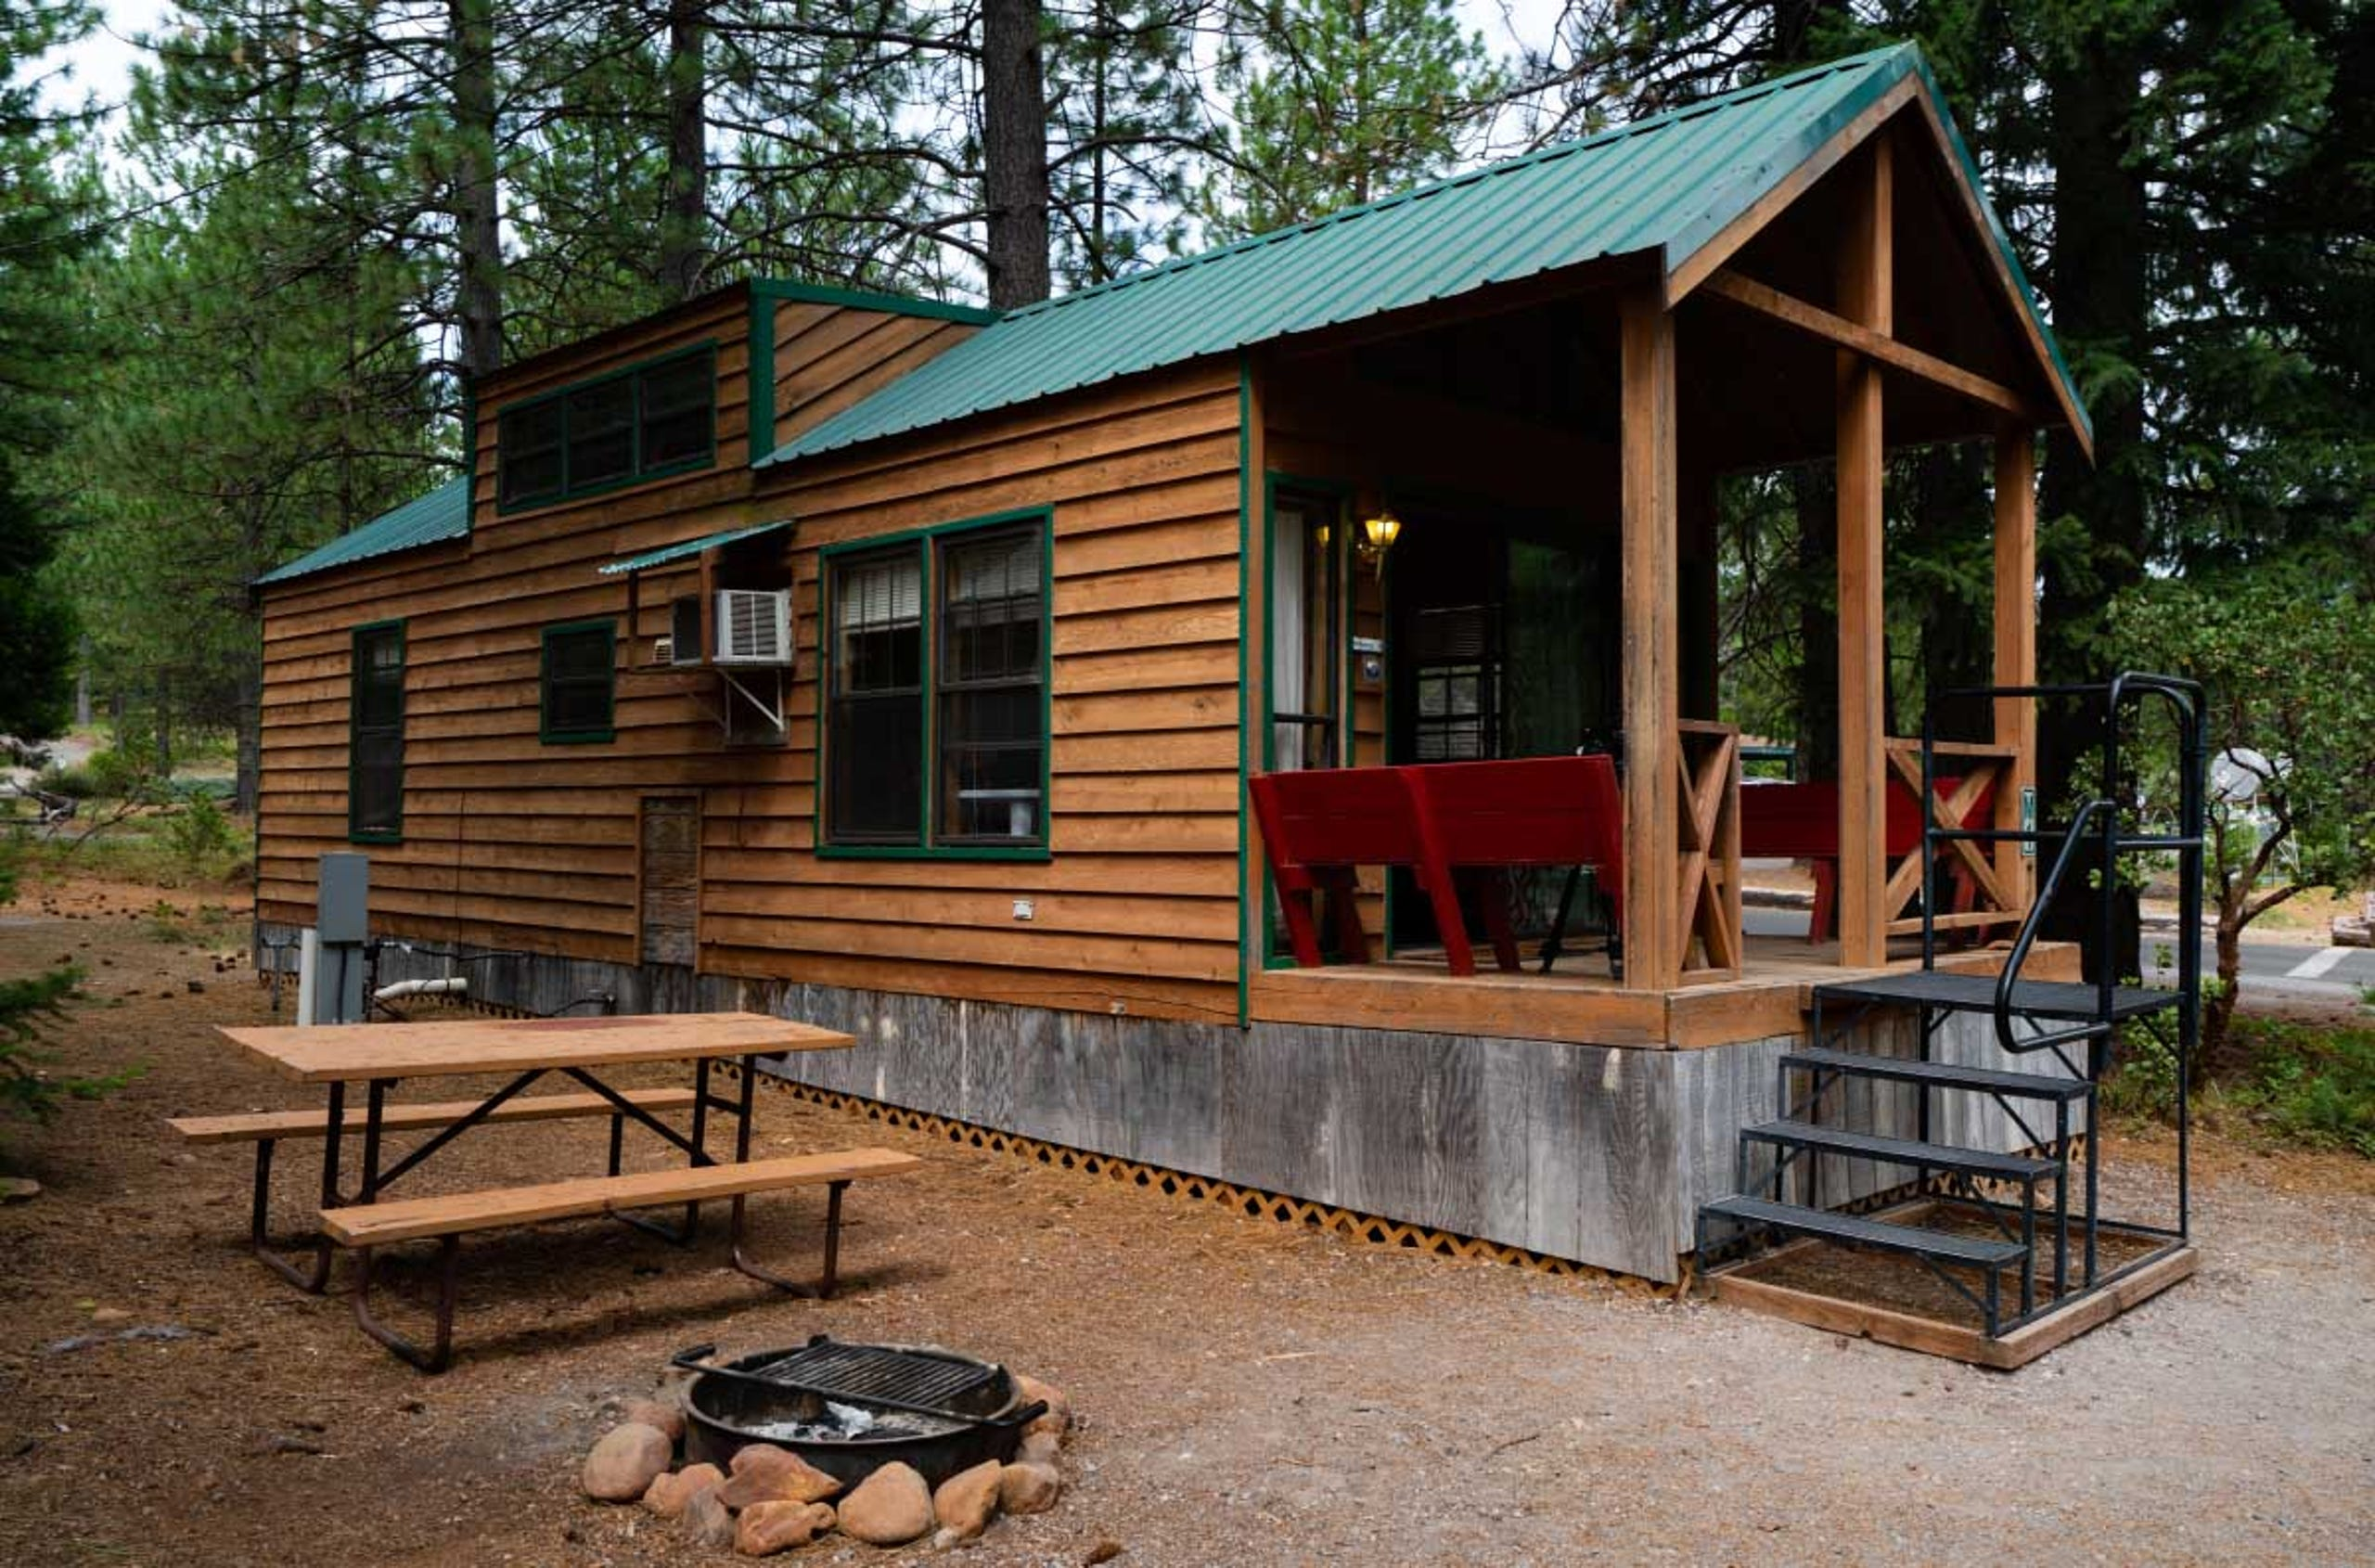 <strong>9.&nbsp;Lake Siskiyou Camp Resort (Mt. Shasta, California)</strong><br /> The camp resort is located near the California-Oregon border on the South West side of Lake Siskiyou and offers views of Mt. Shasta and the Shasta Trinity National Forest.&nbsp;It has 2,602&nbsp;advance reservations for 2021.&nbsp;